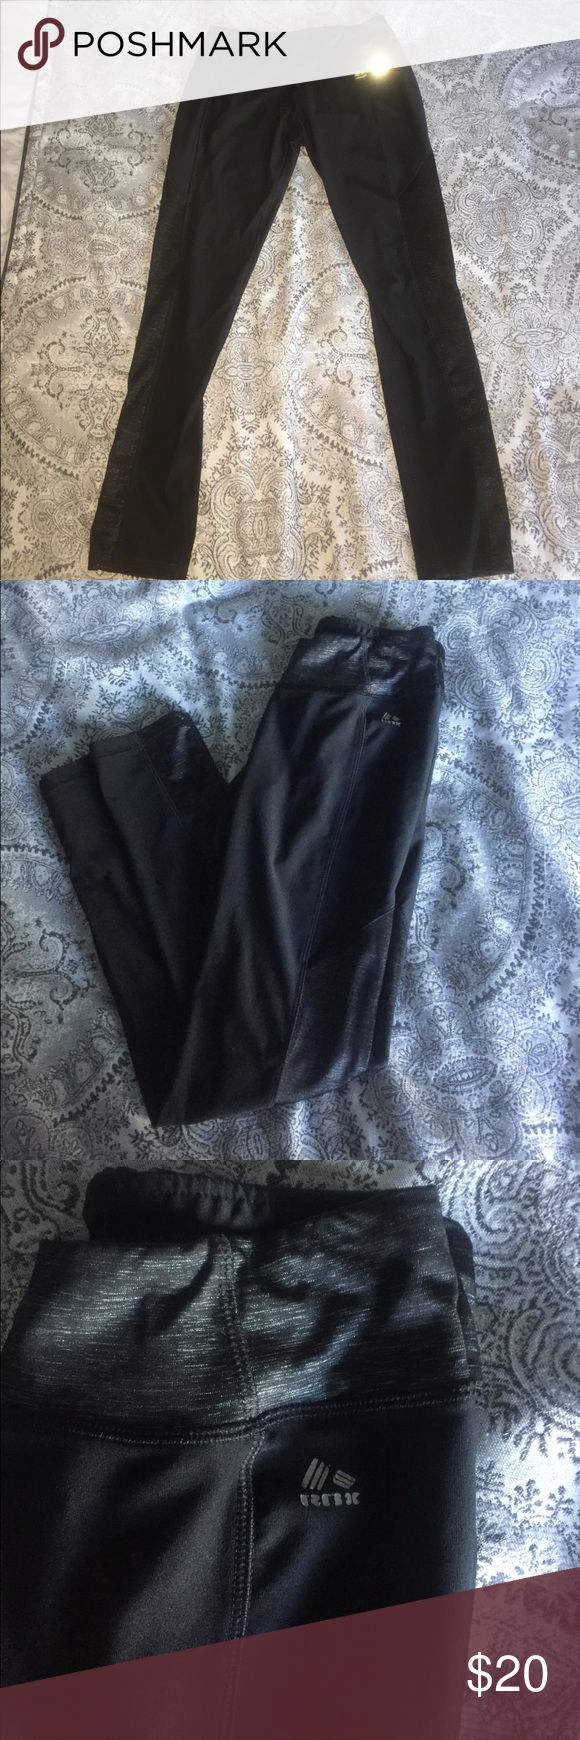 Black and Silver leggings Super cute and comfy black and sliver workout leggings. The logo is starting to come off but other than that these pants are in great condition. Have been worn and washed multiple times. I just don't wear them anymore. Reebok Pants Track Pants & Joggers